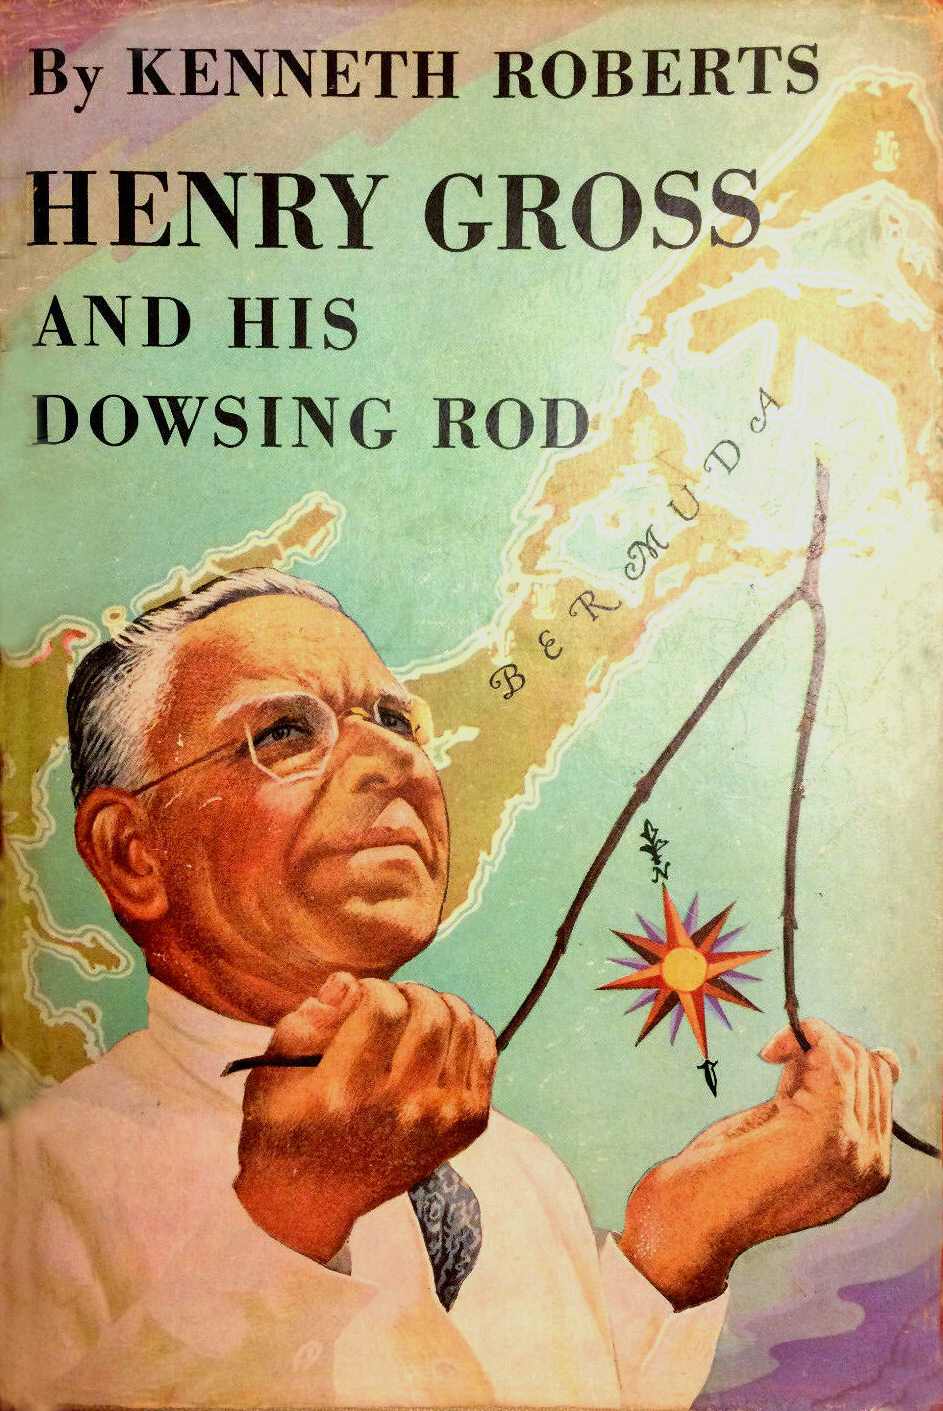 Books About Dowsing, Divining Rods, Doodlebugging, Water